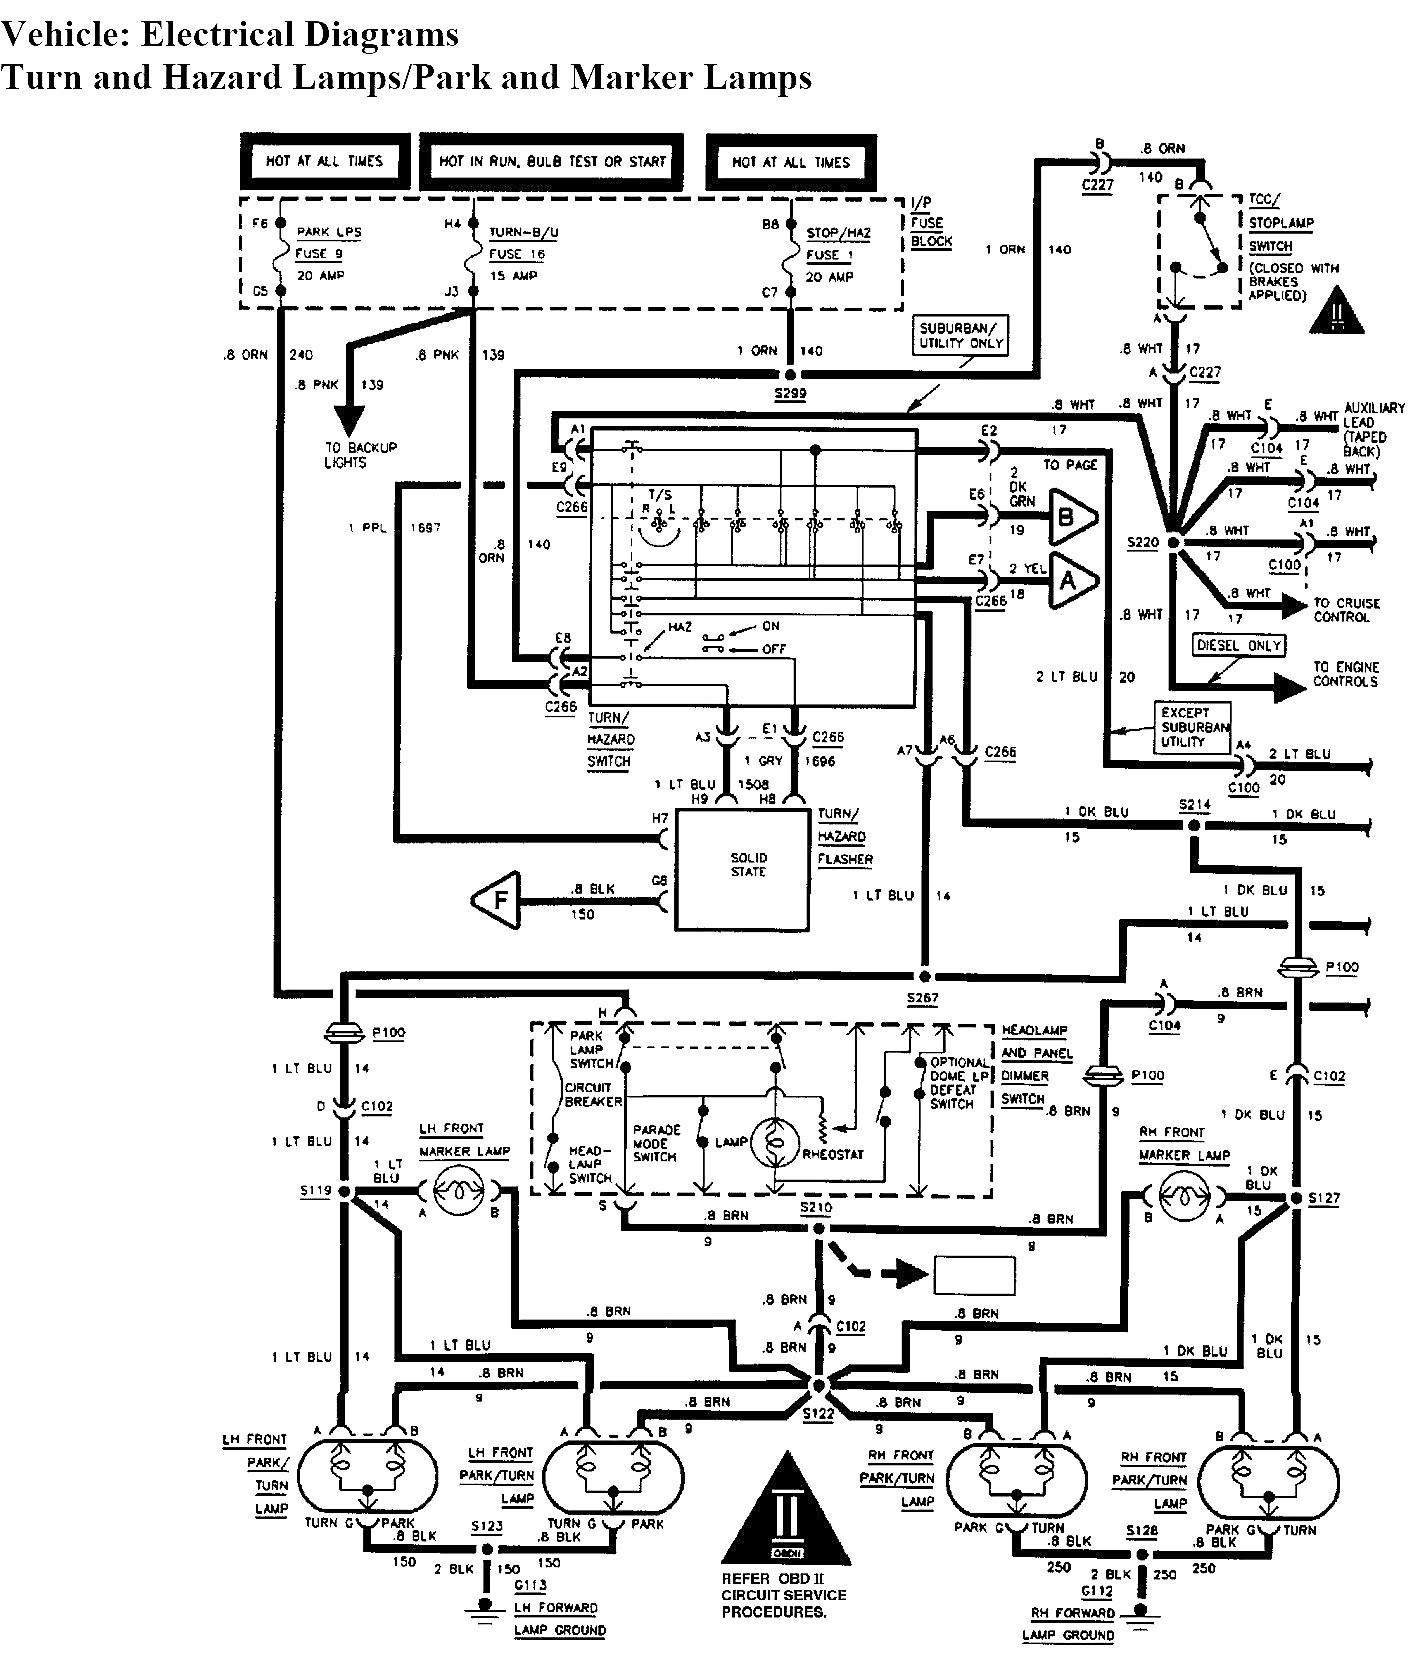 183123 Tailgate Window Wiring Diagram furthermore Fuel Pump Wont Shut Off 1998 Silverado V8 5 7 together with 1983 1988 Ford Bronco Ii Start Ignition in addition Schematics i together with 6qmnh Chevrolet Caprice Classic Broughm Need Diagram Fuse Box. on wire diagram for s 10 blazer 4x4